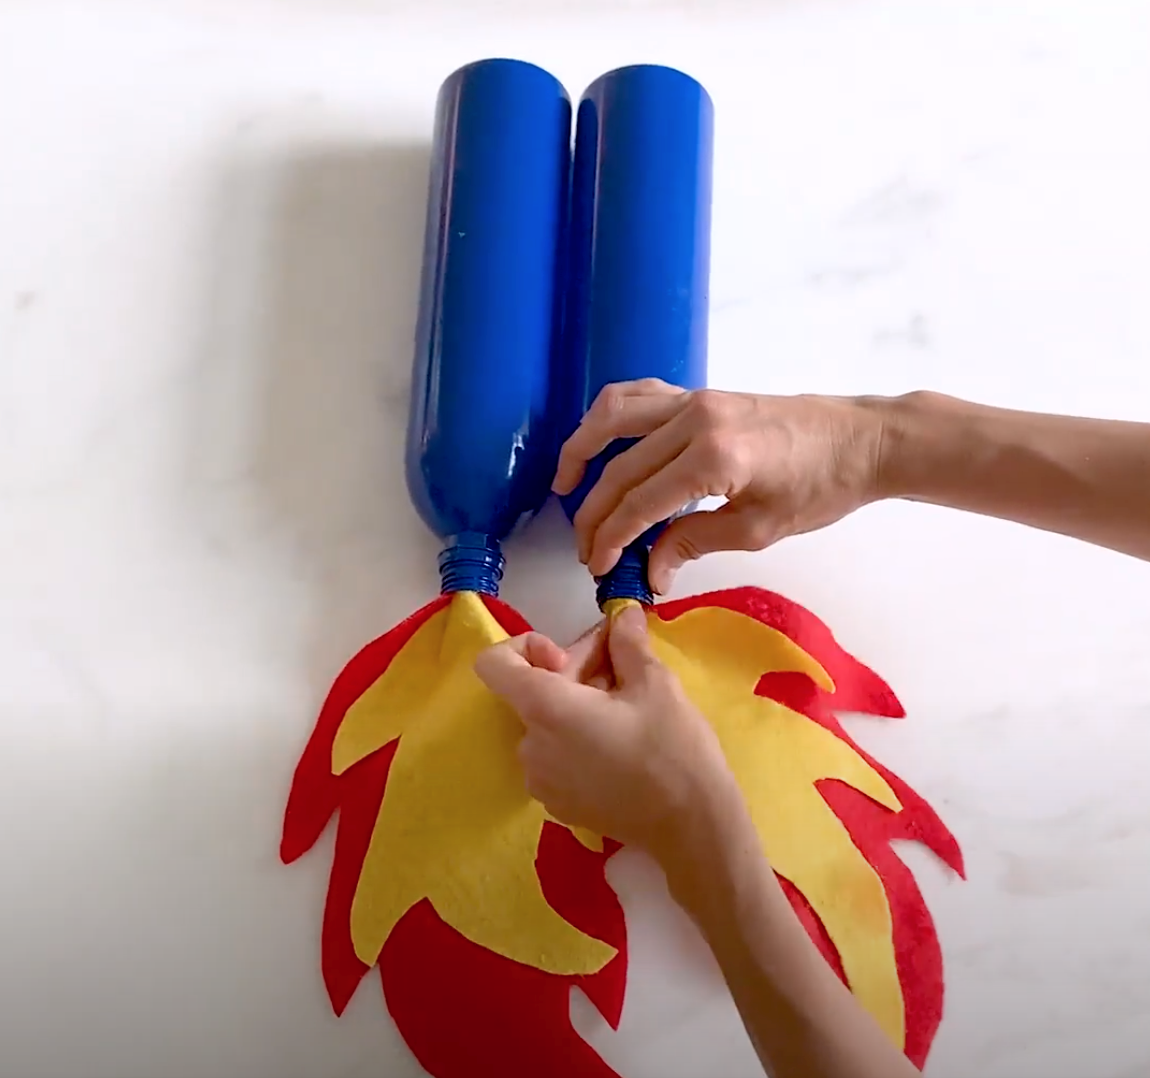 Spray paint bottles and glue flames inside